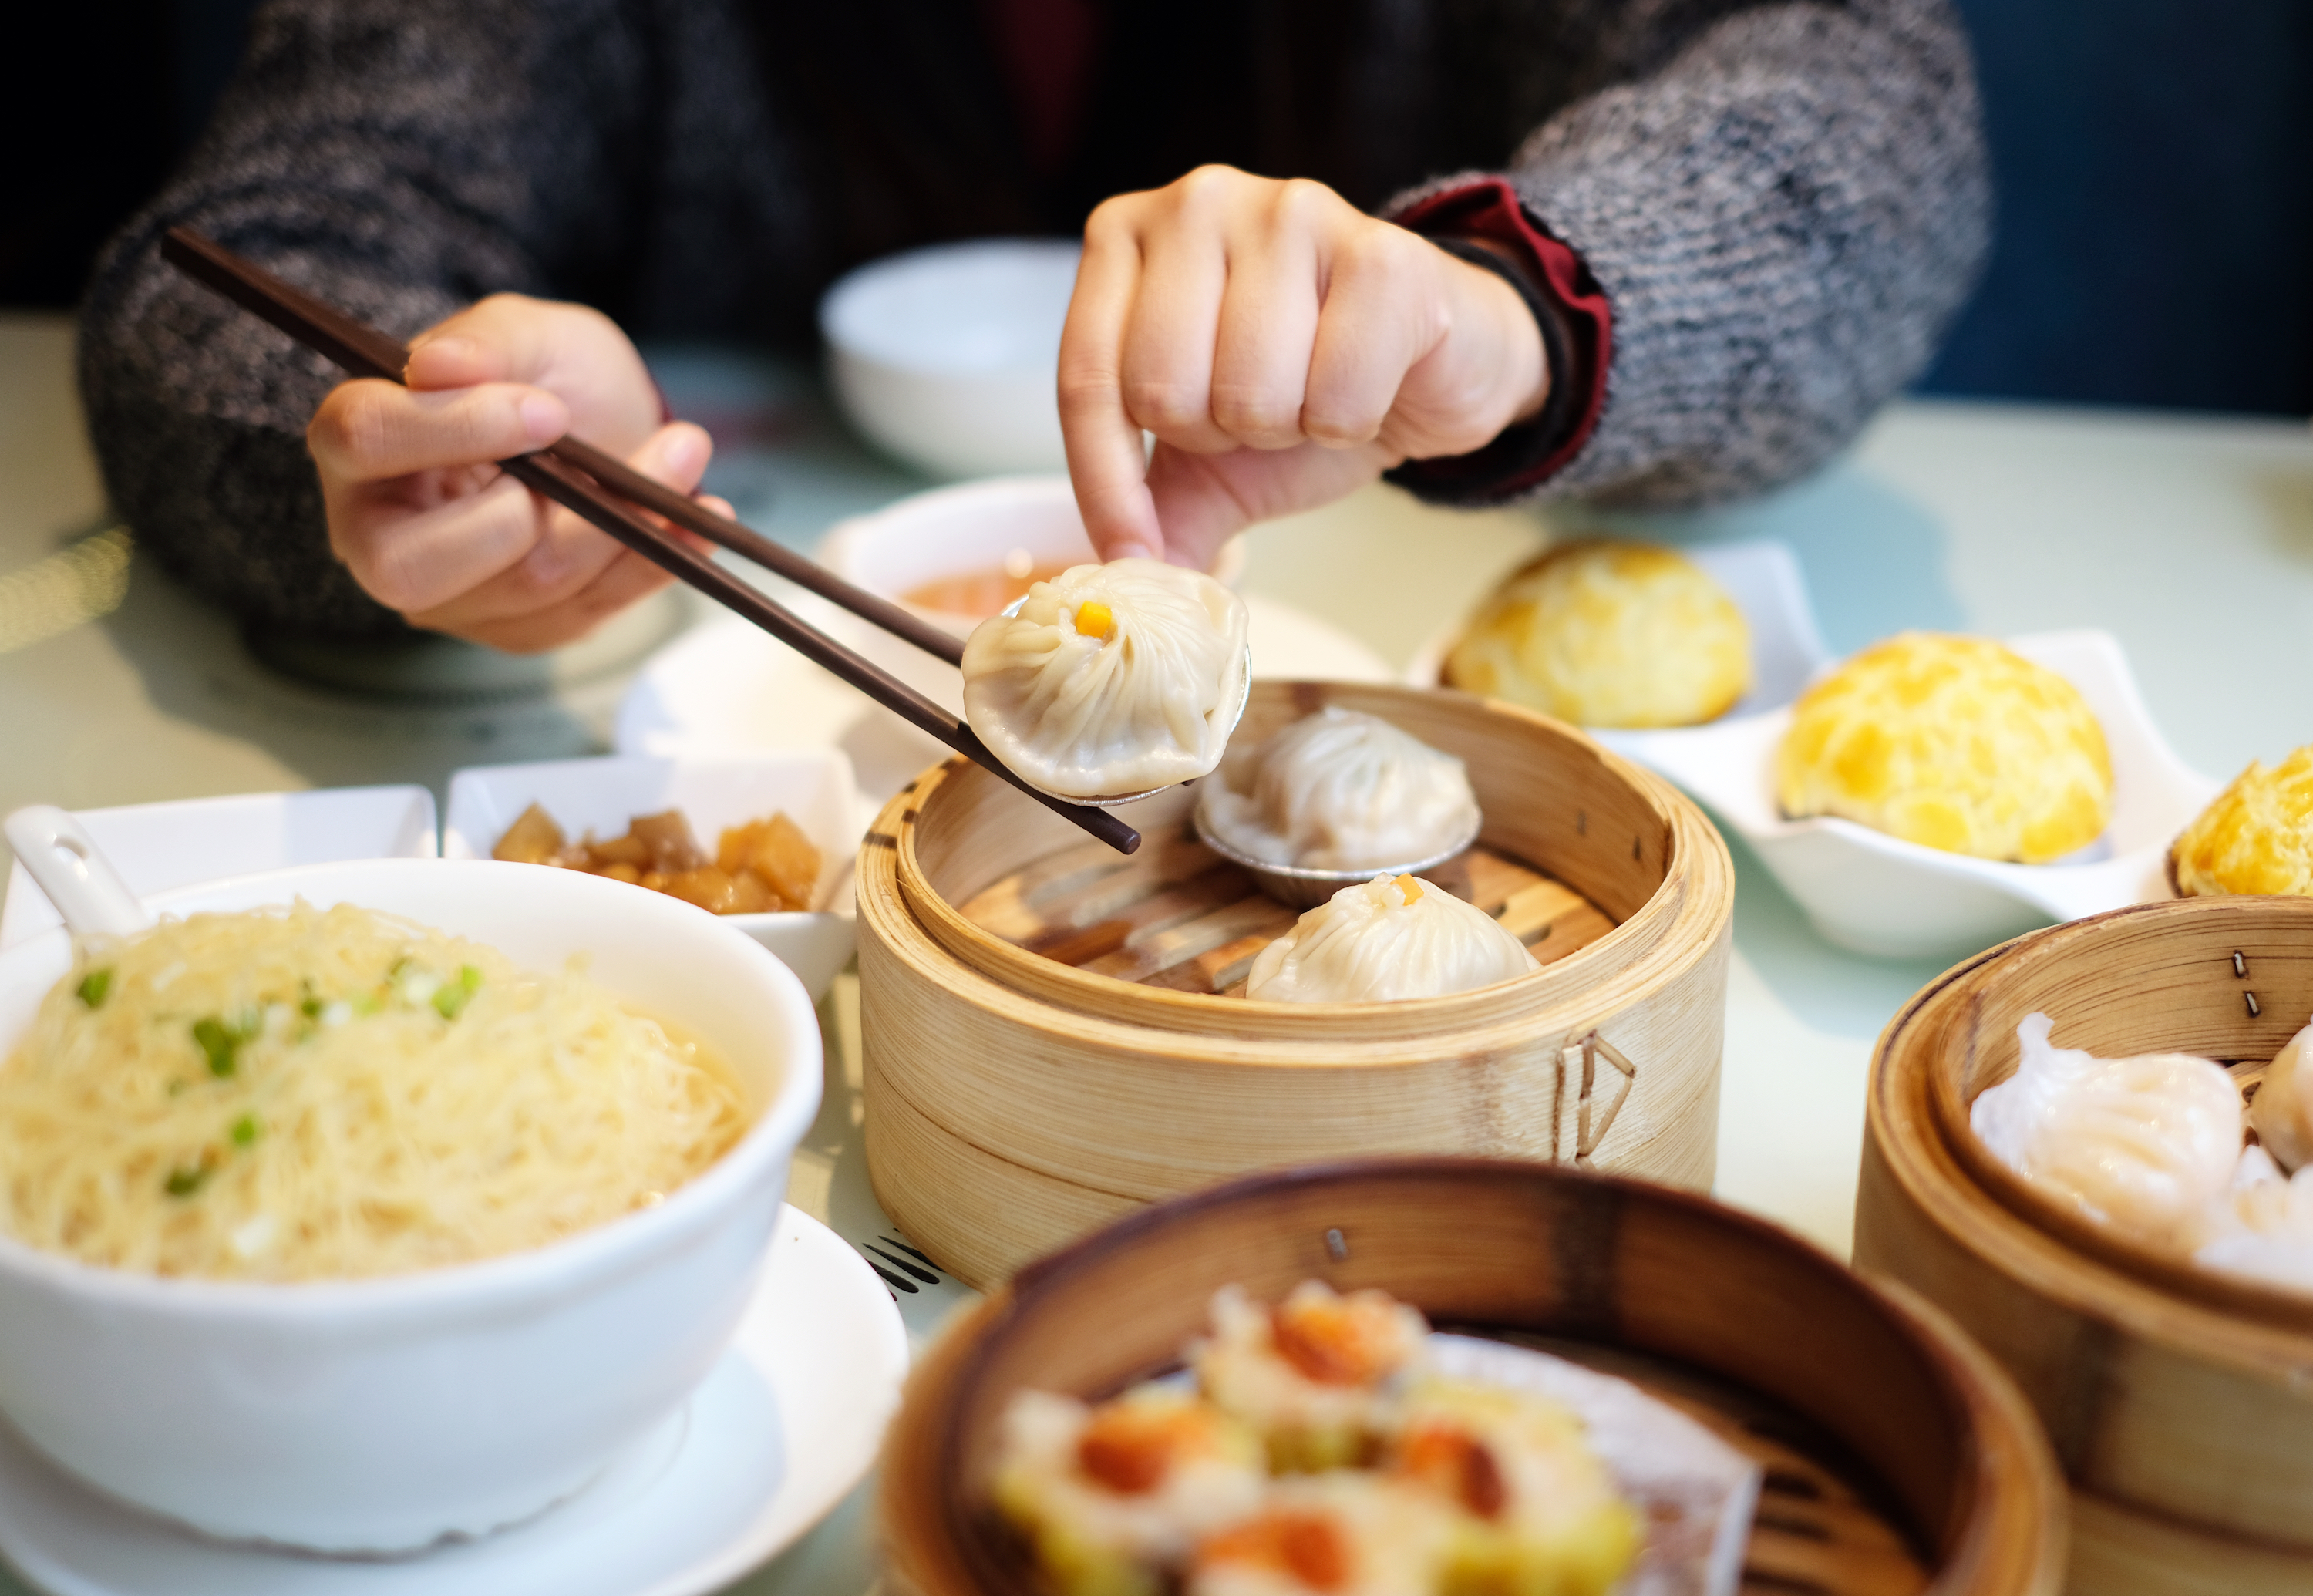 It's official: Hong Kong is the food capital of the world